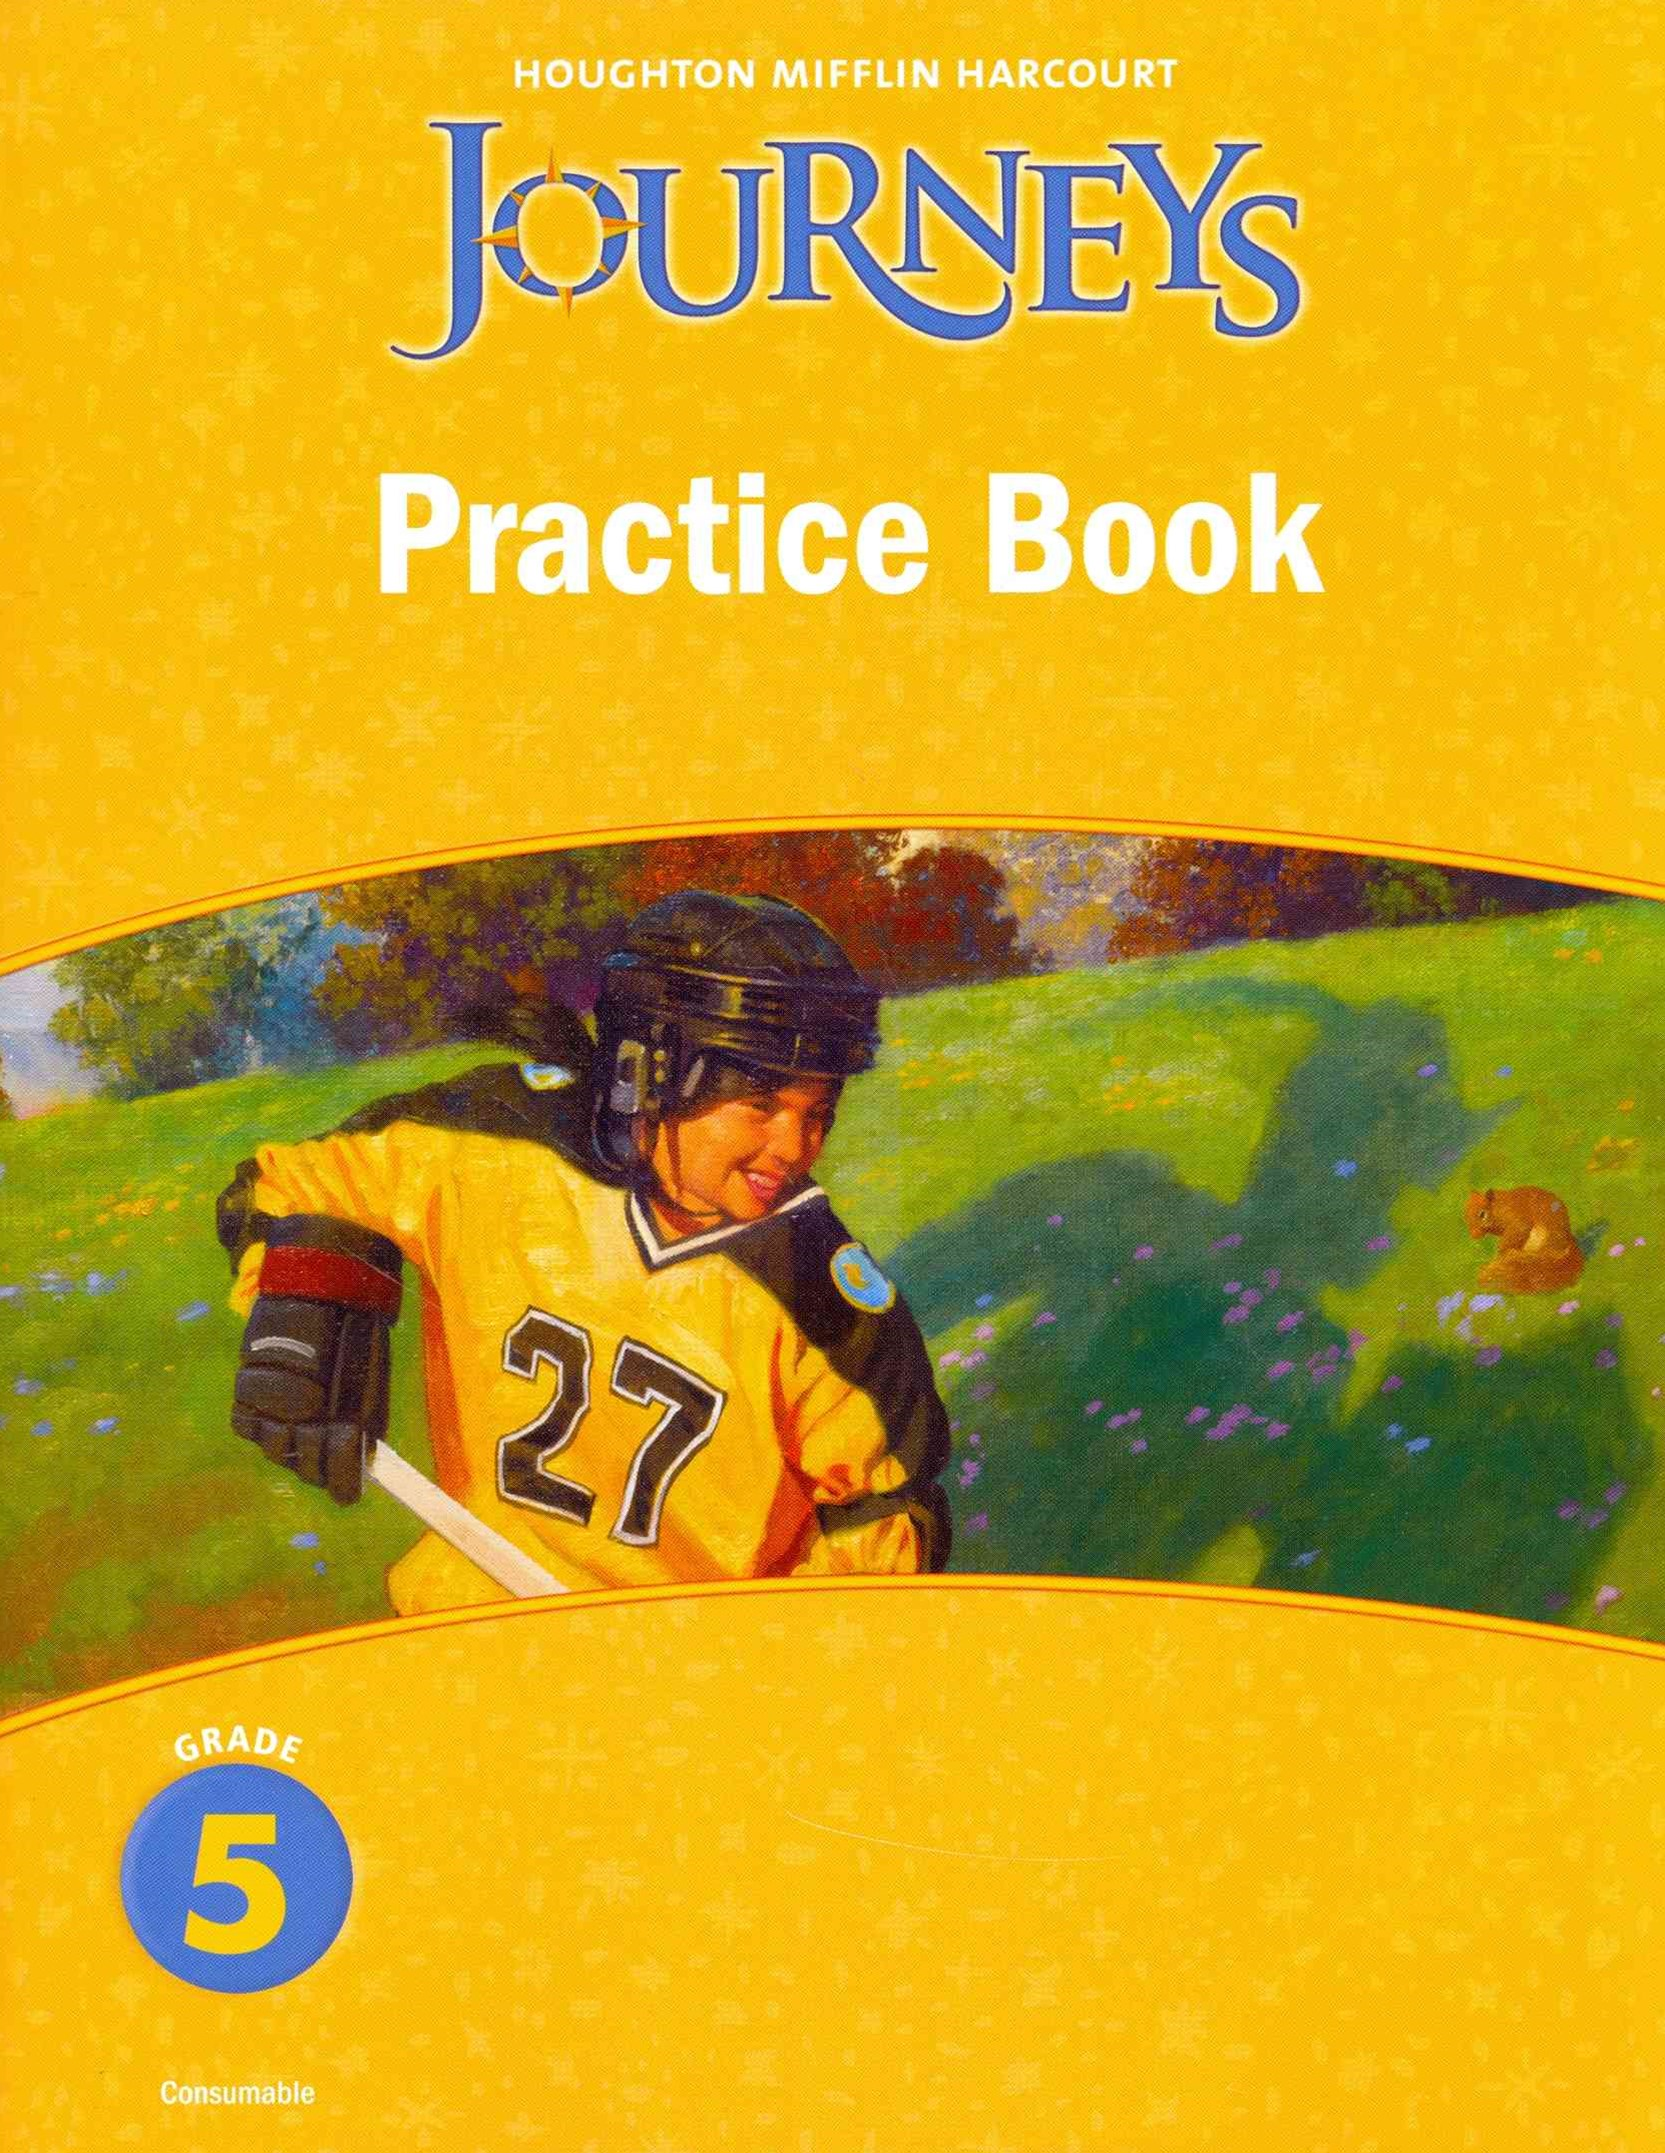 Journeys - Practice Book